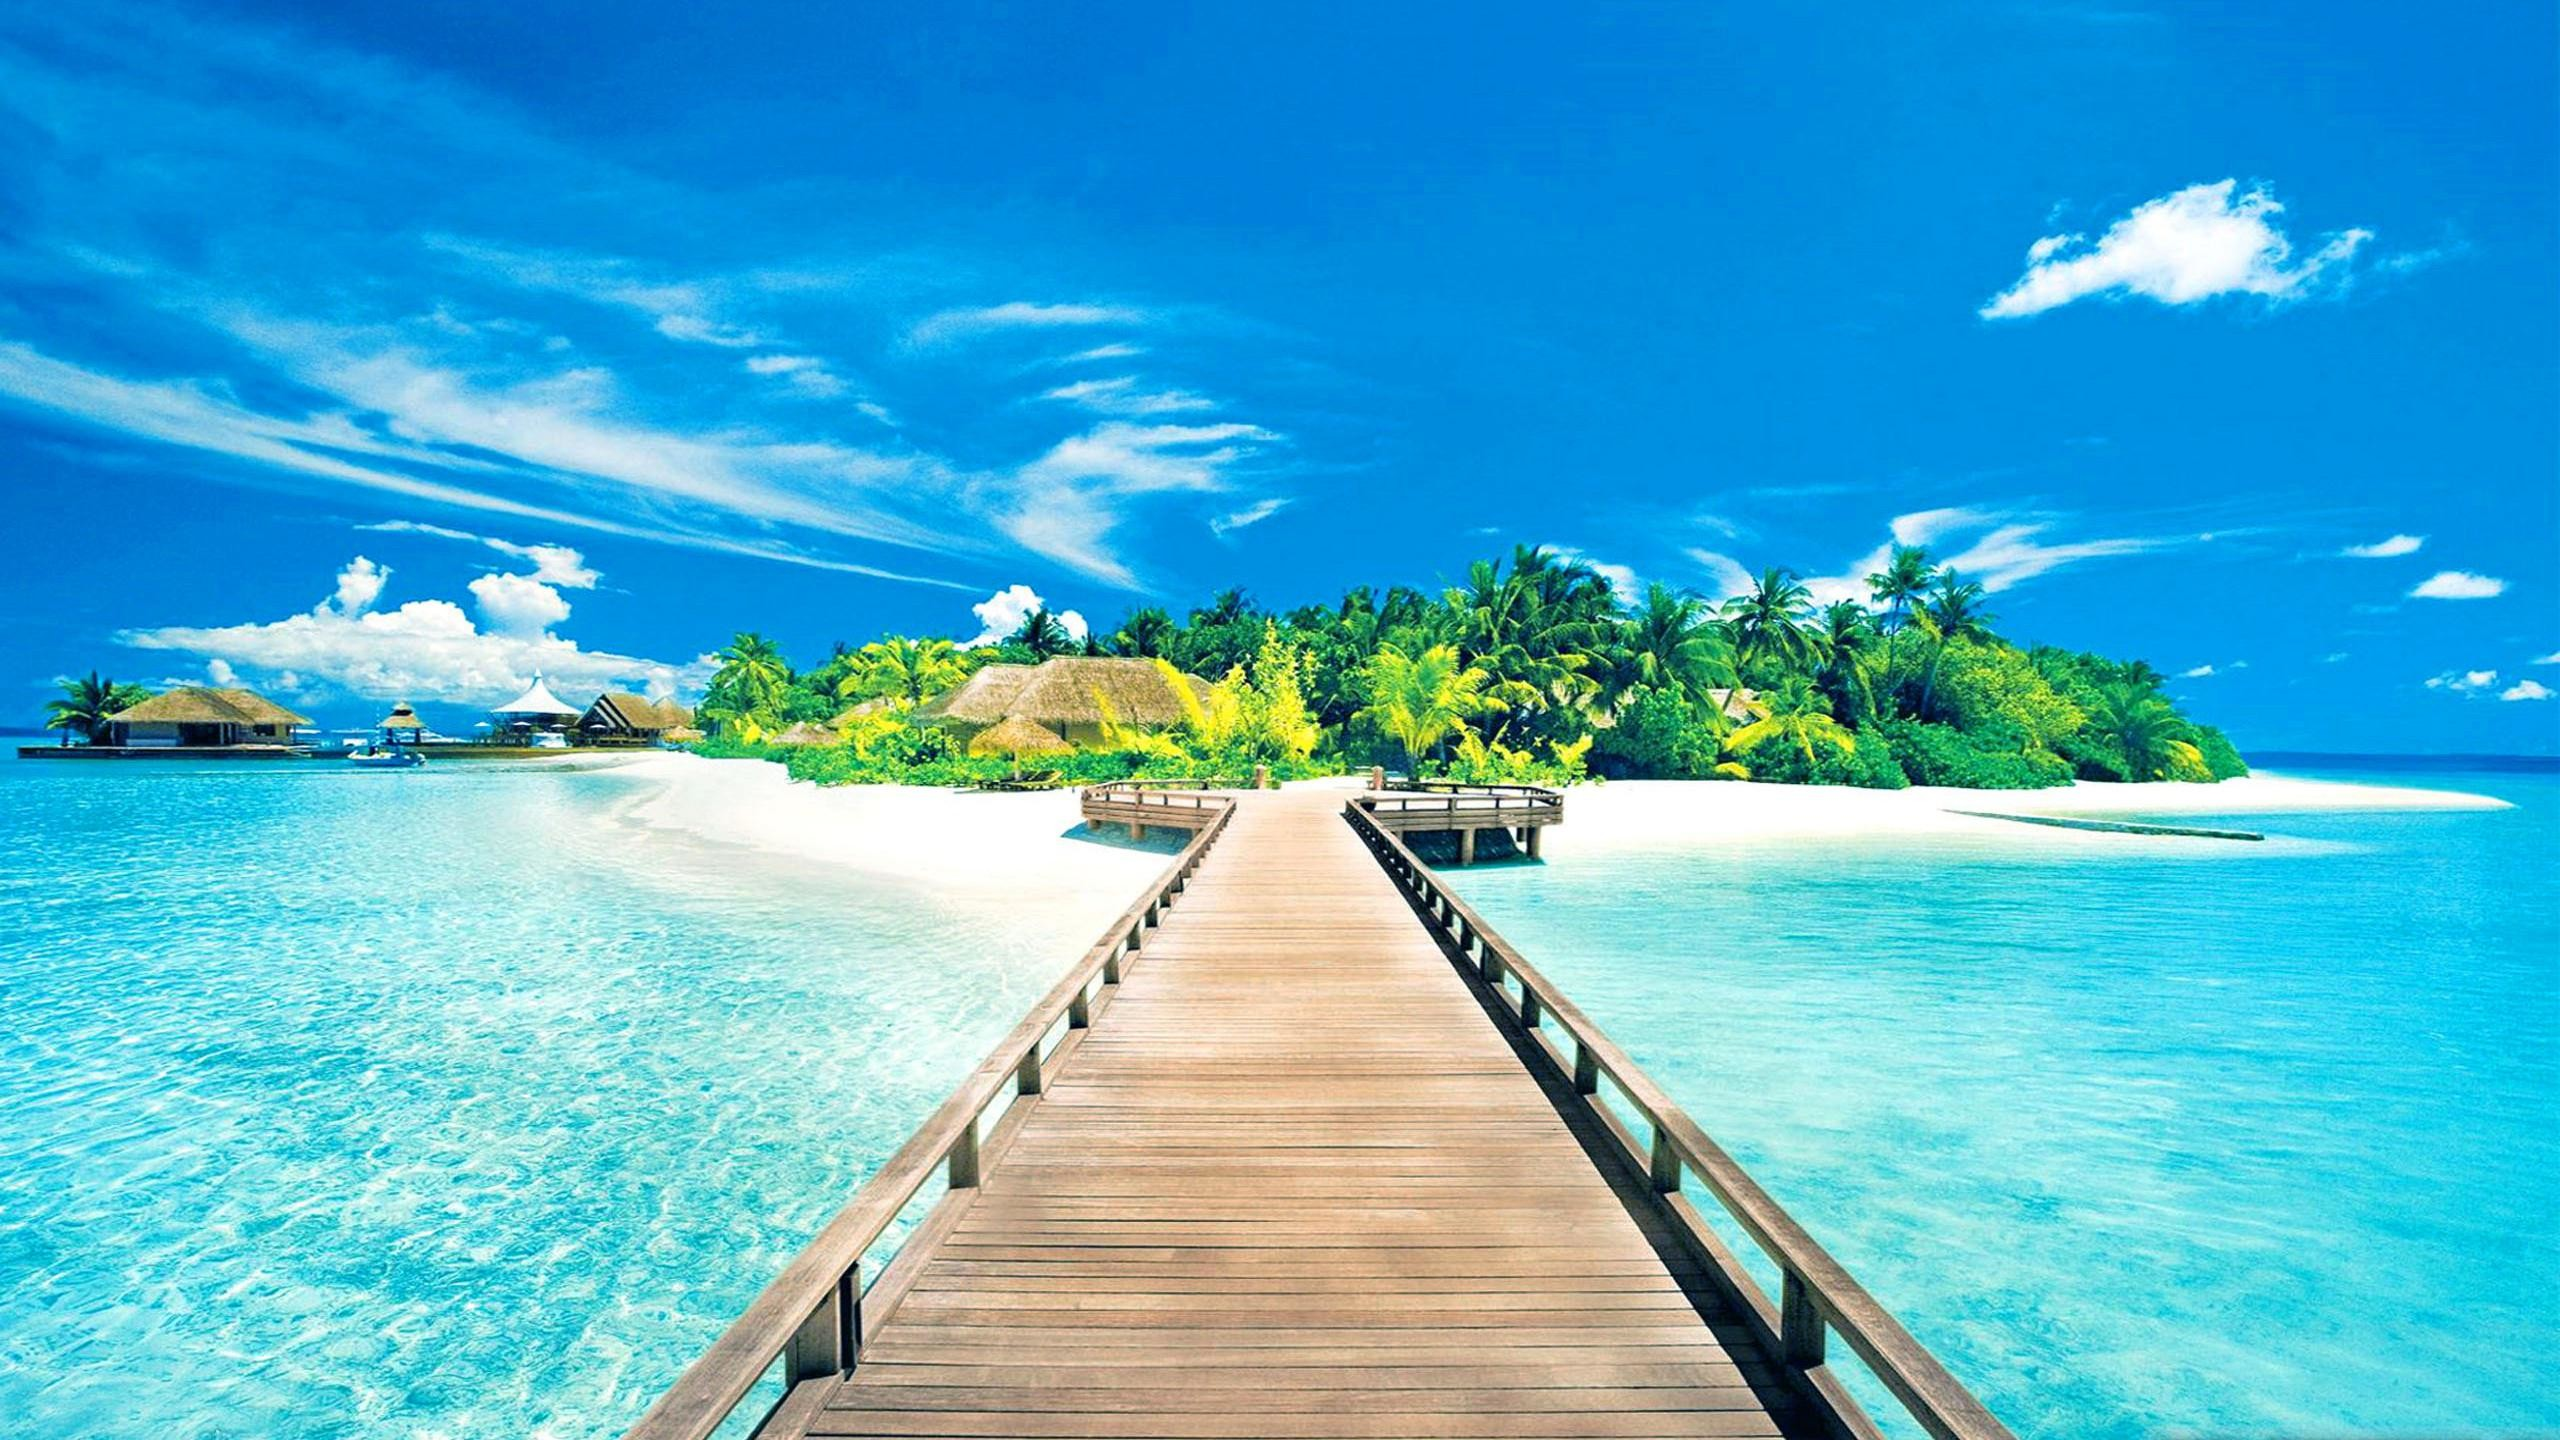 Pictures of borneo beaches There's A Place rawan, East Kalimantan, Indonesia